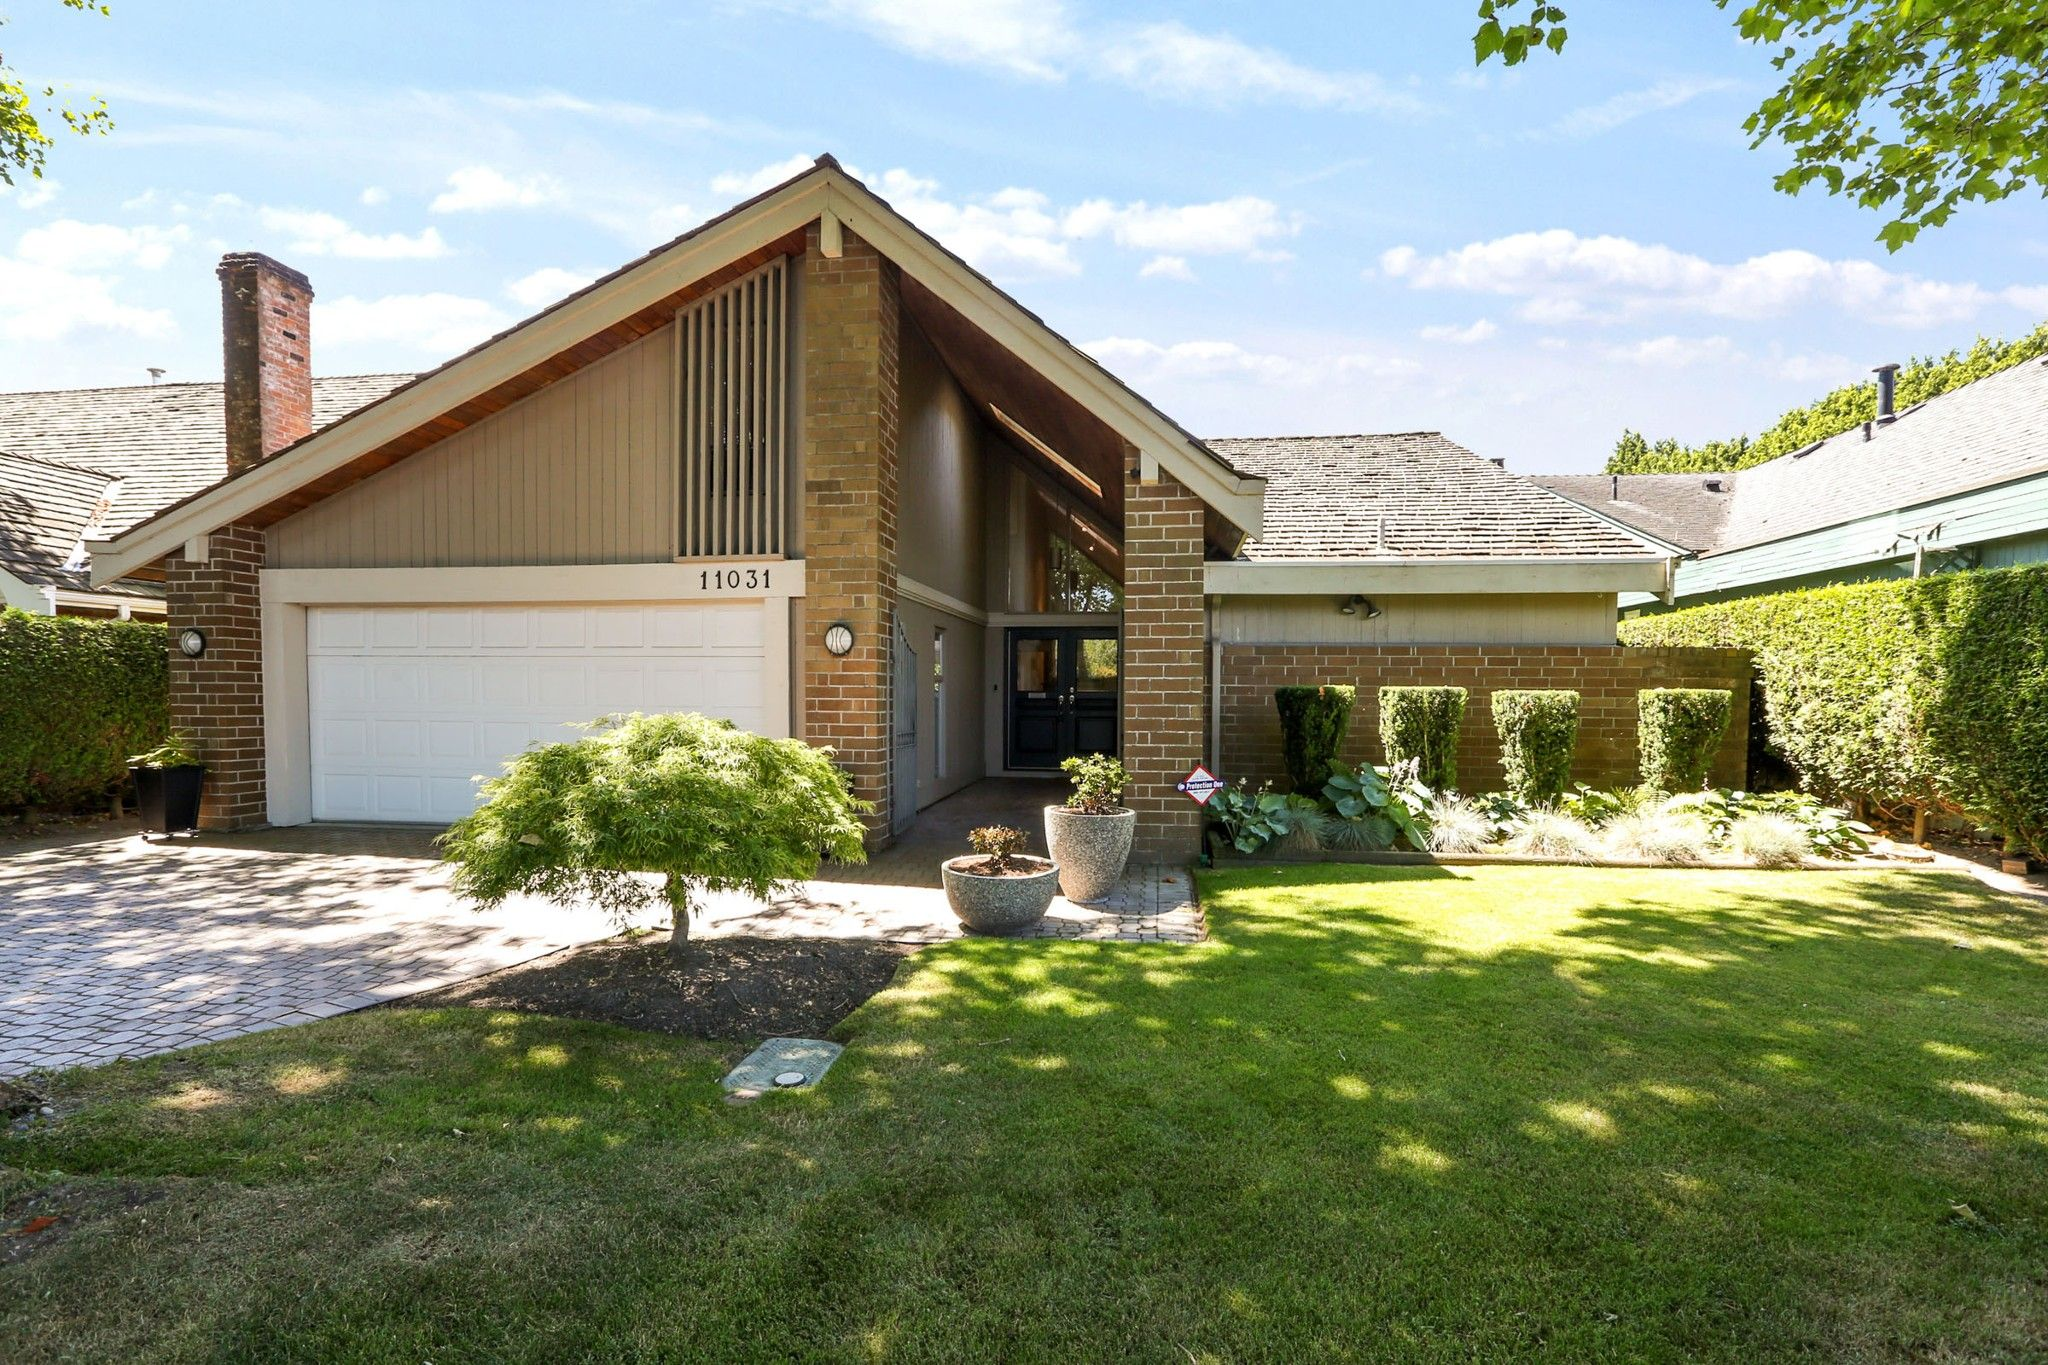 """Main Photo: 11031 SWALLOW Drive in Richmond: Westwind House for sale in """"Westwind"""" : MLS®# R2596863"""